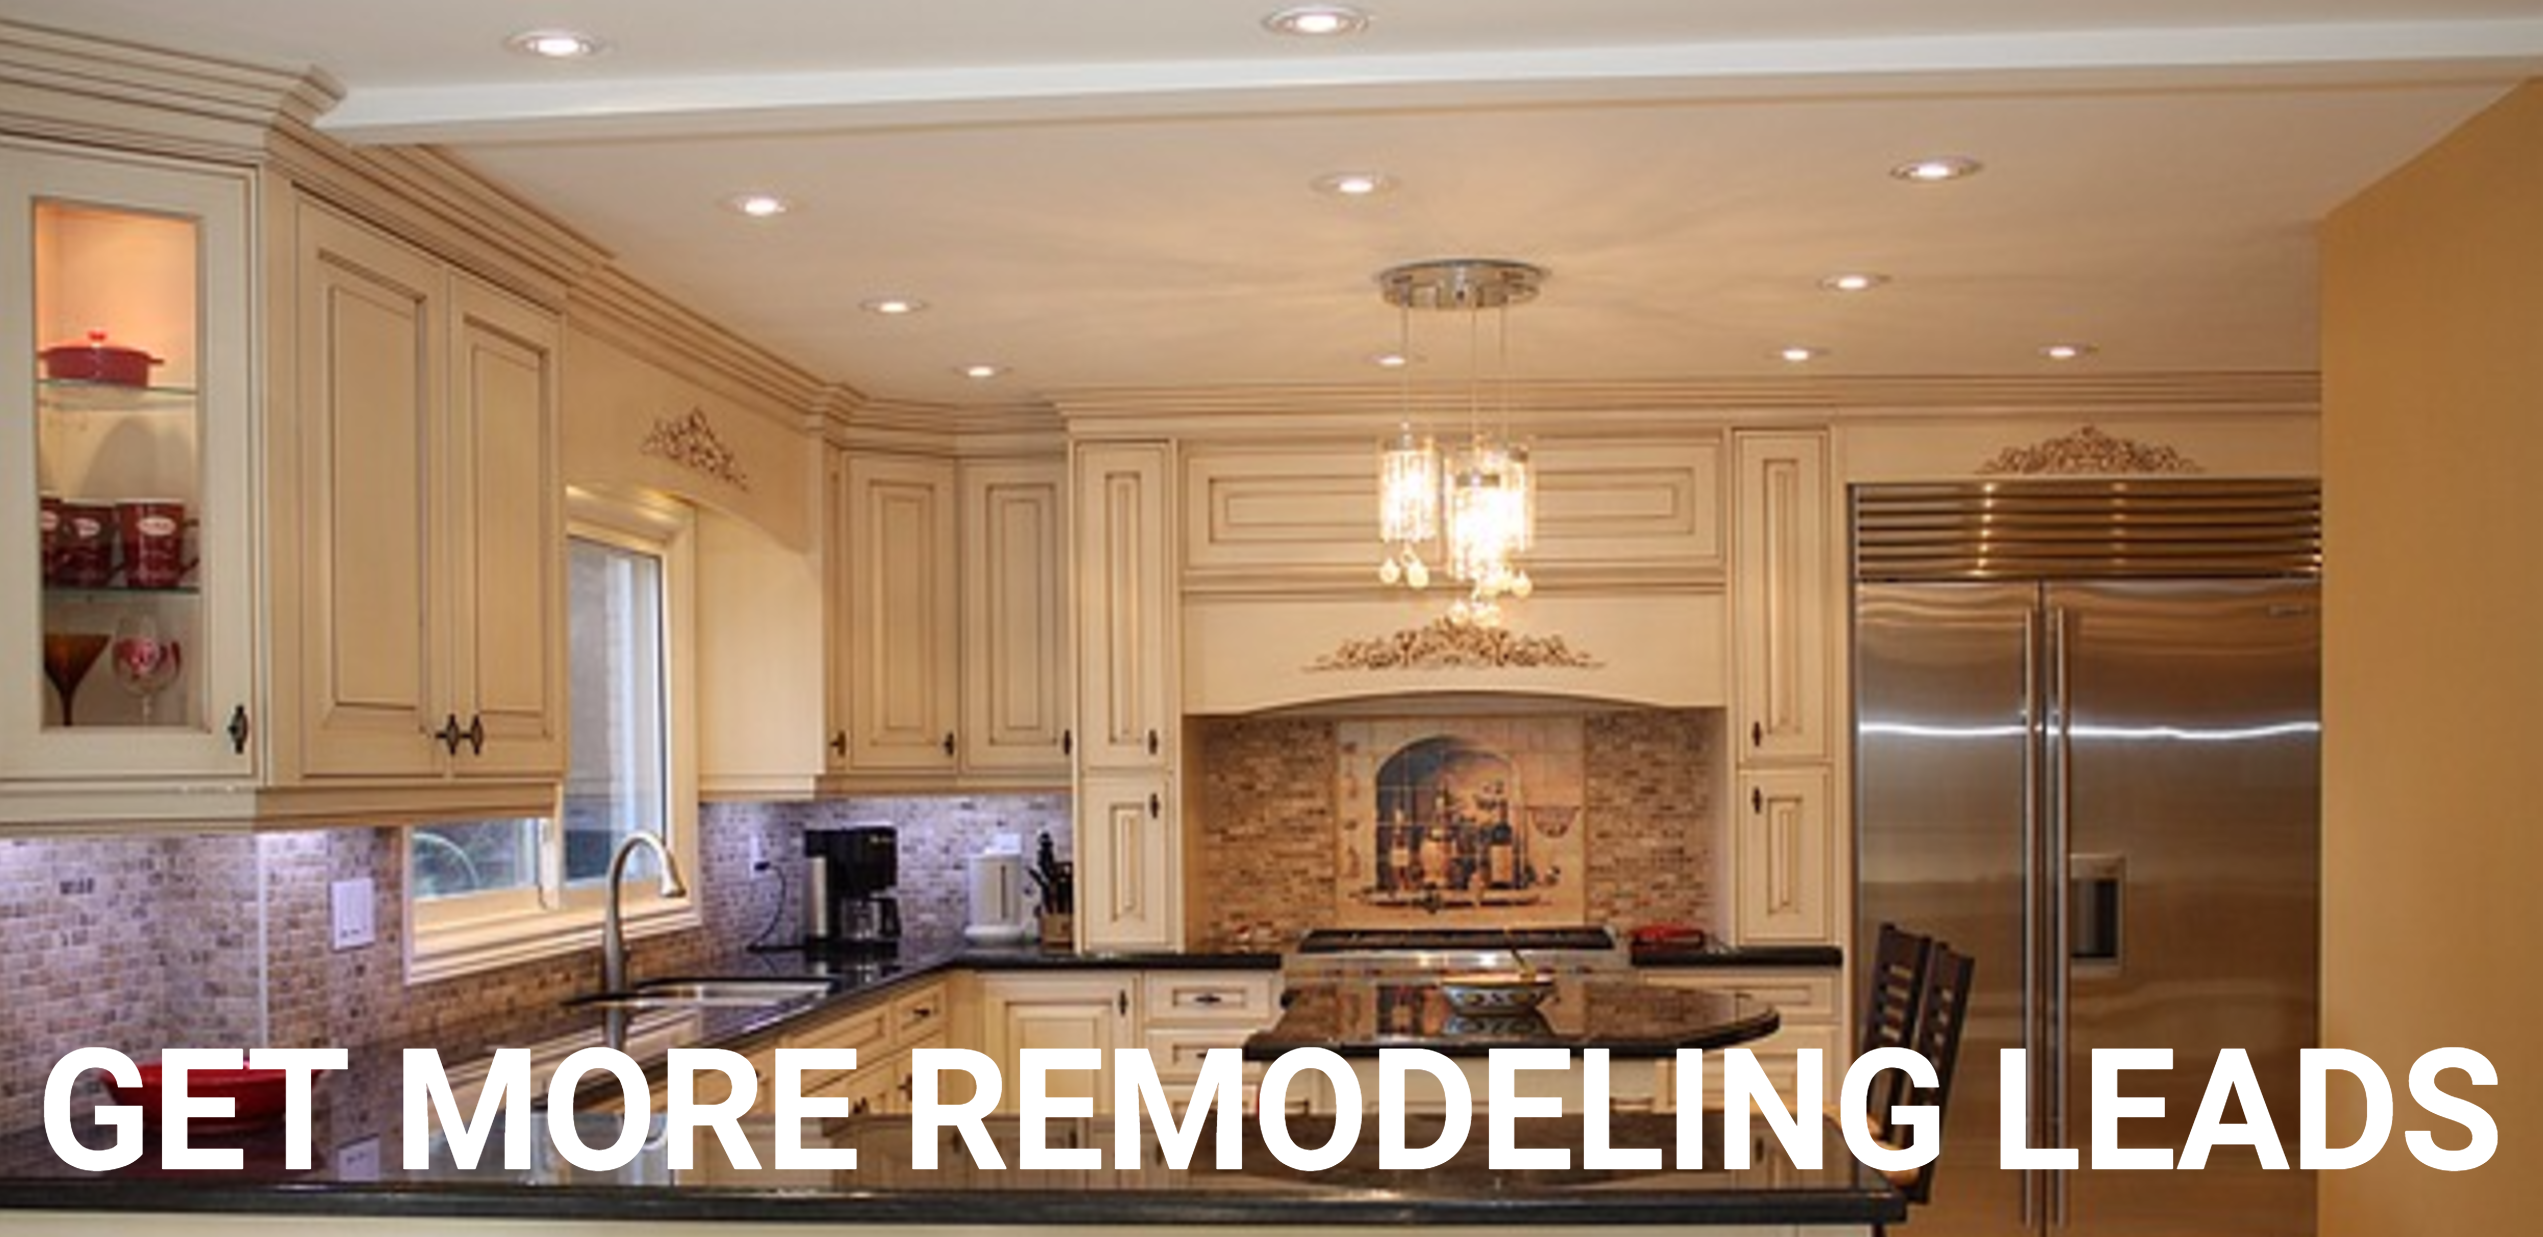 7 Ways To Consistently Get Remodeling Leads